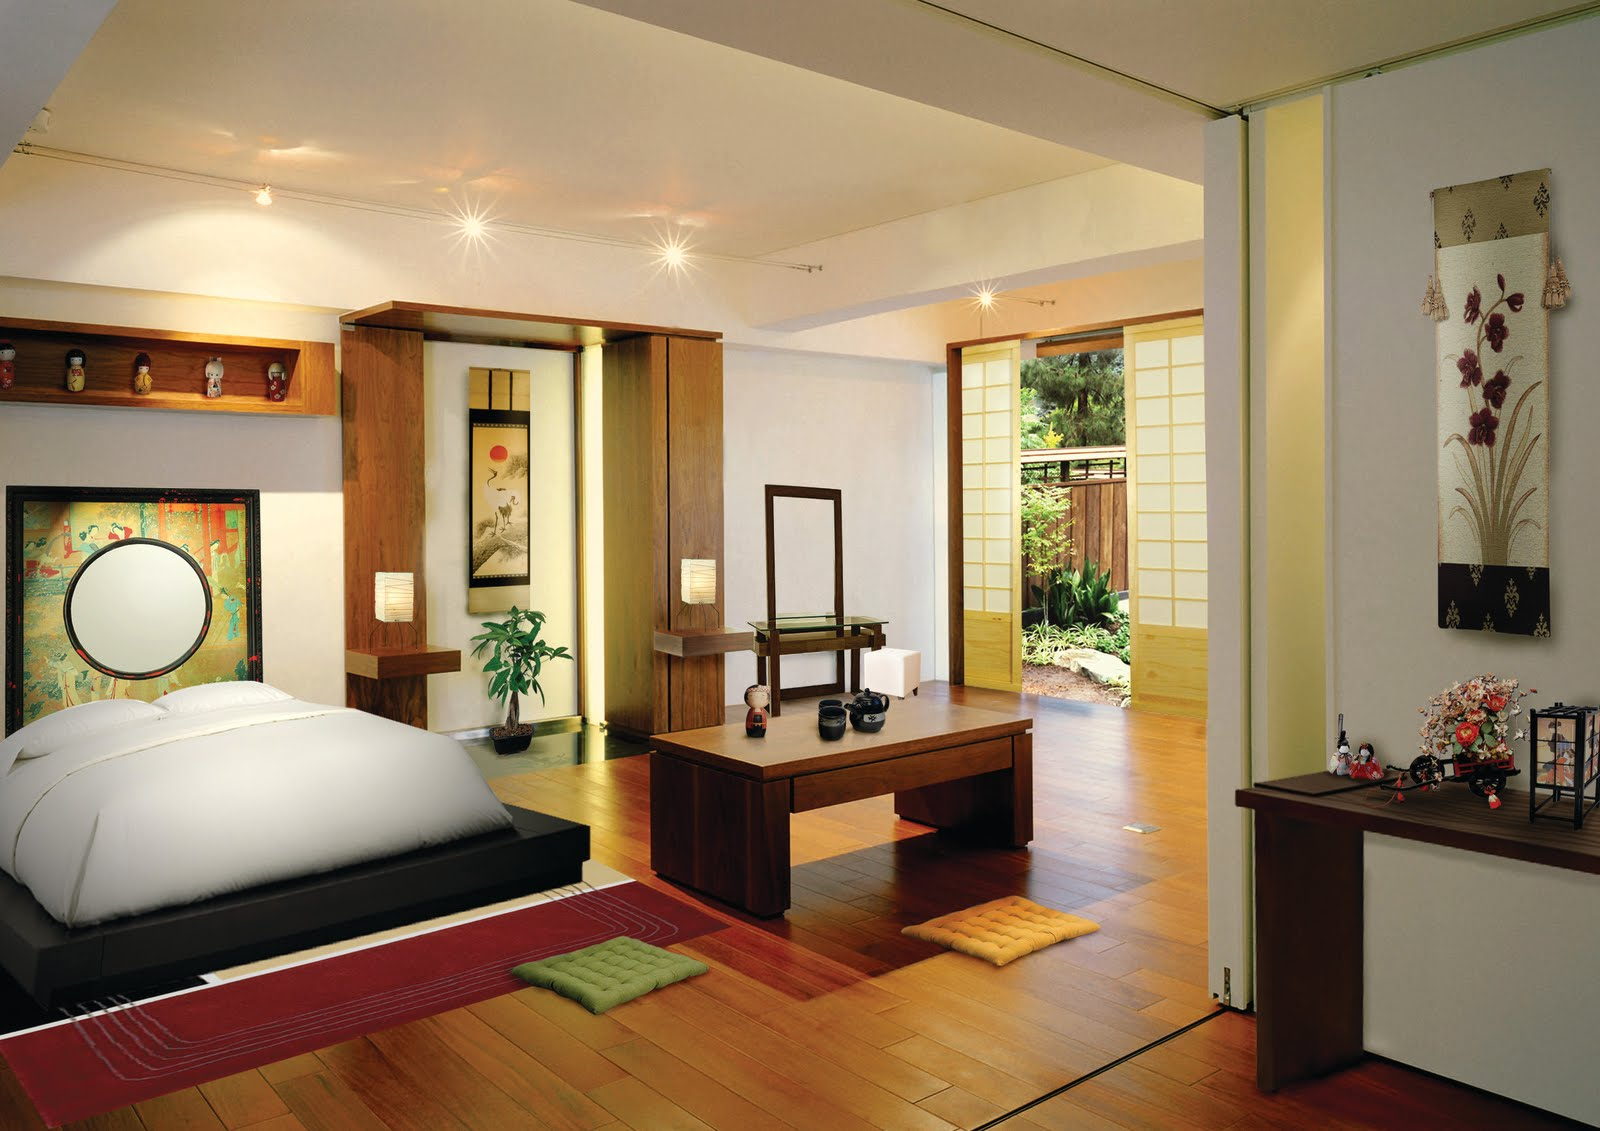 Melokumi japanese style bedroom design for Japanese bedroom design